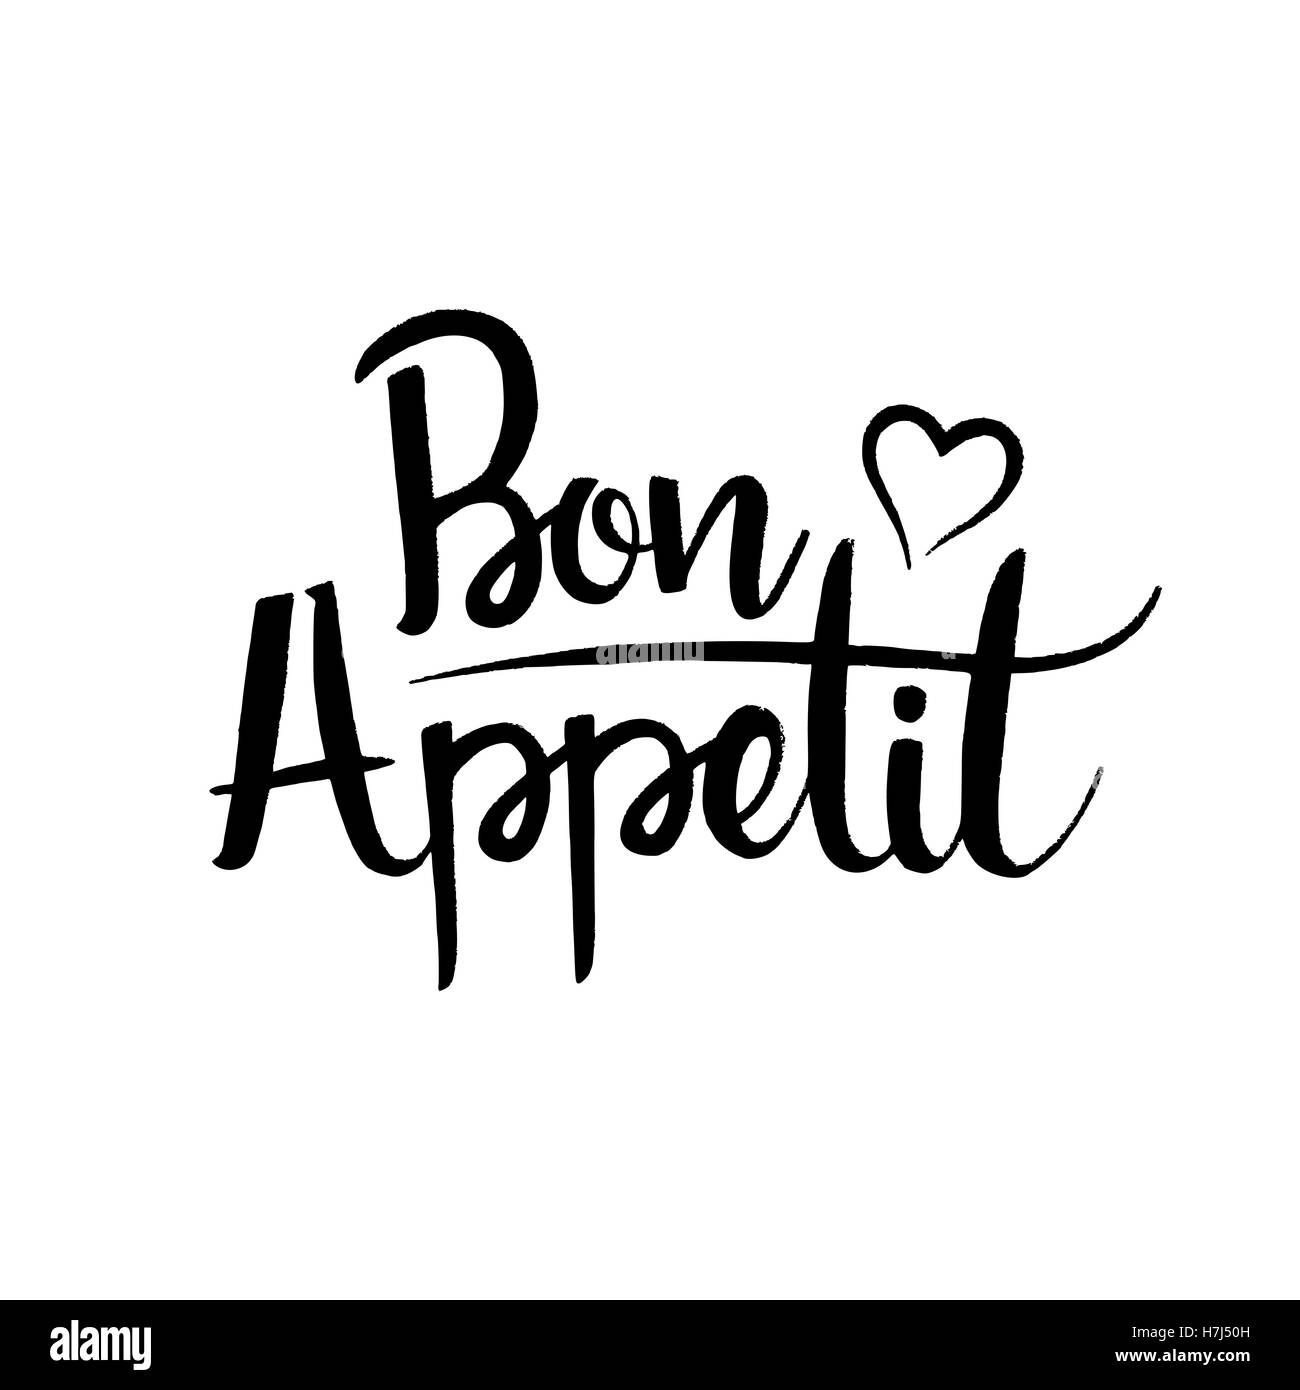 bon appetit hand lettering stockfotos bon appetit hand lettering bilder alamy. Black Bedroom Furniture Sets. Home Design Ideas